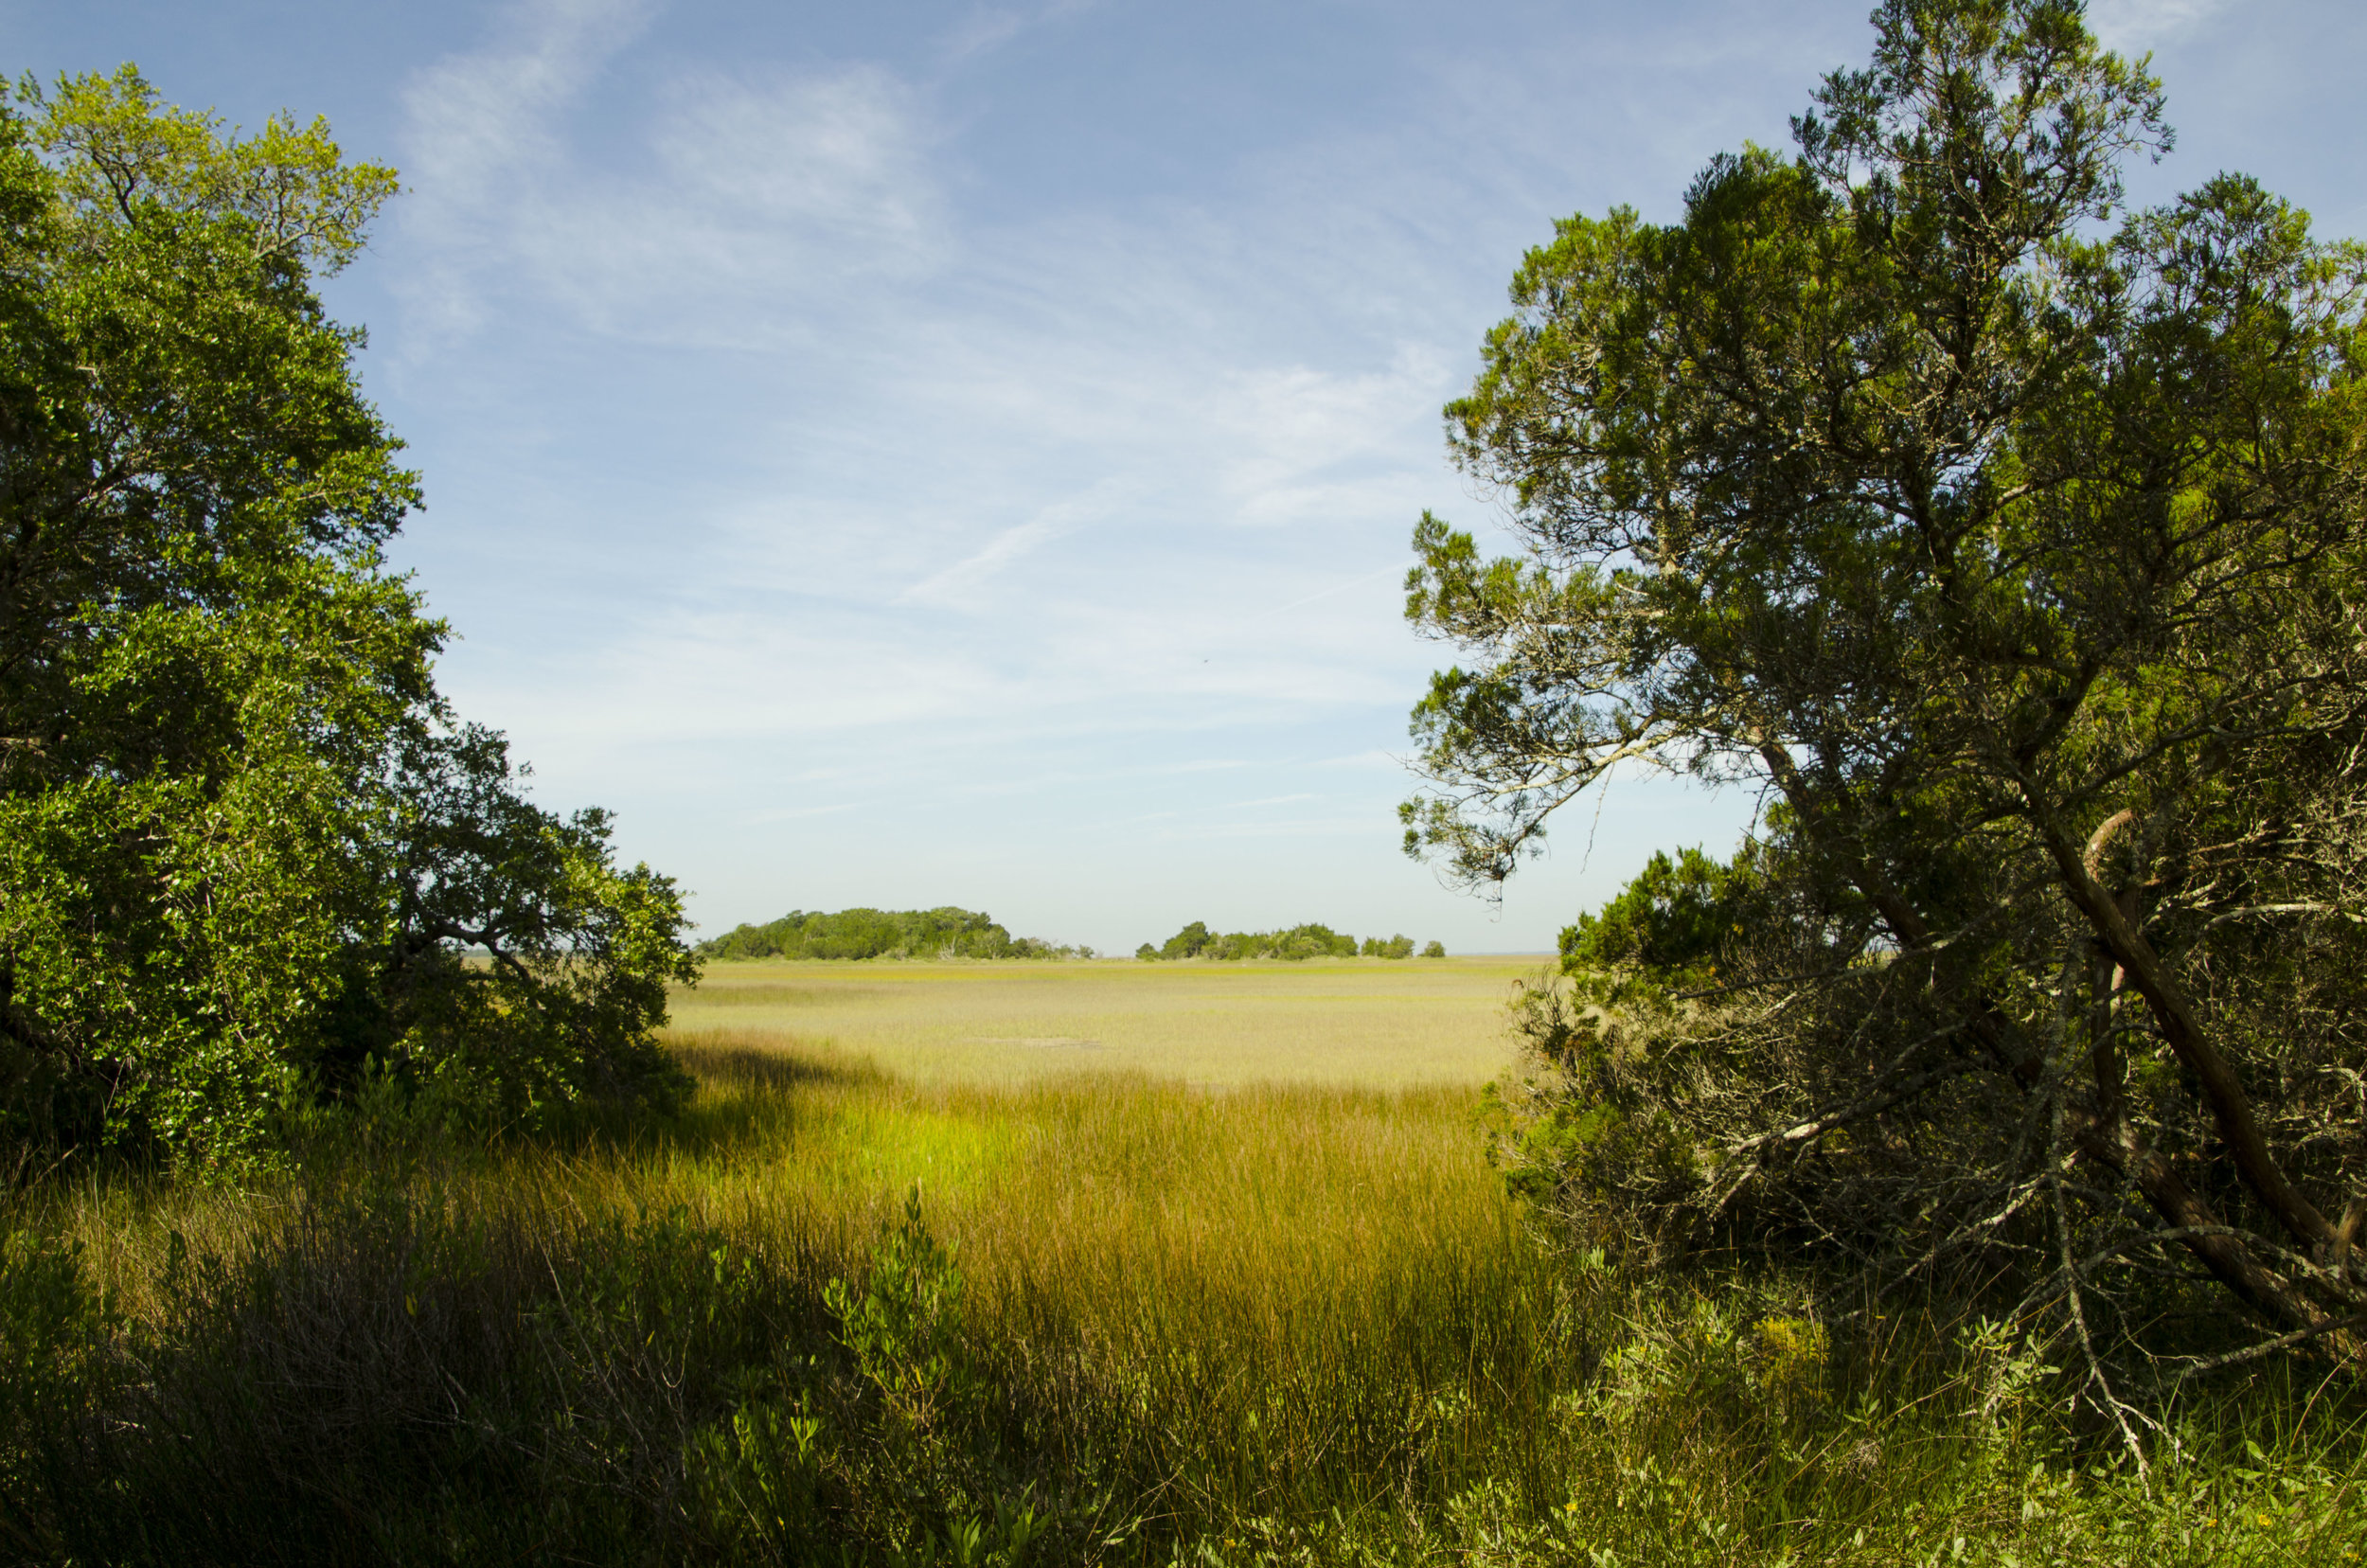 View of the saltmarsh from the Beach Road.